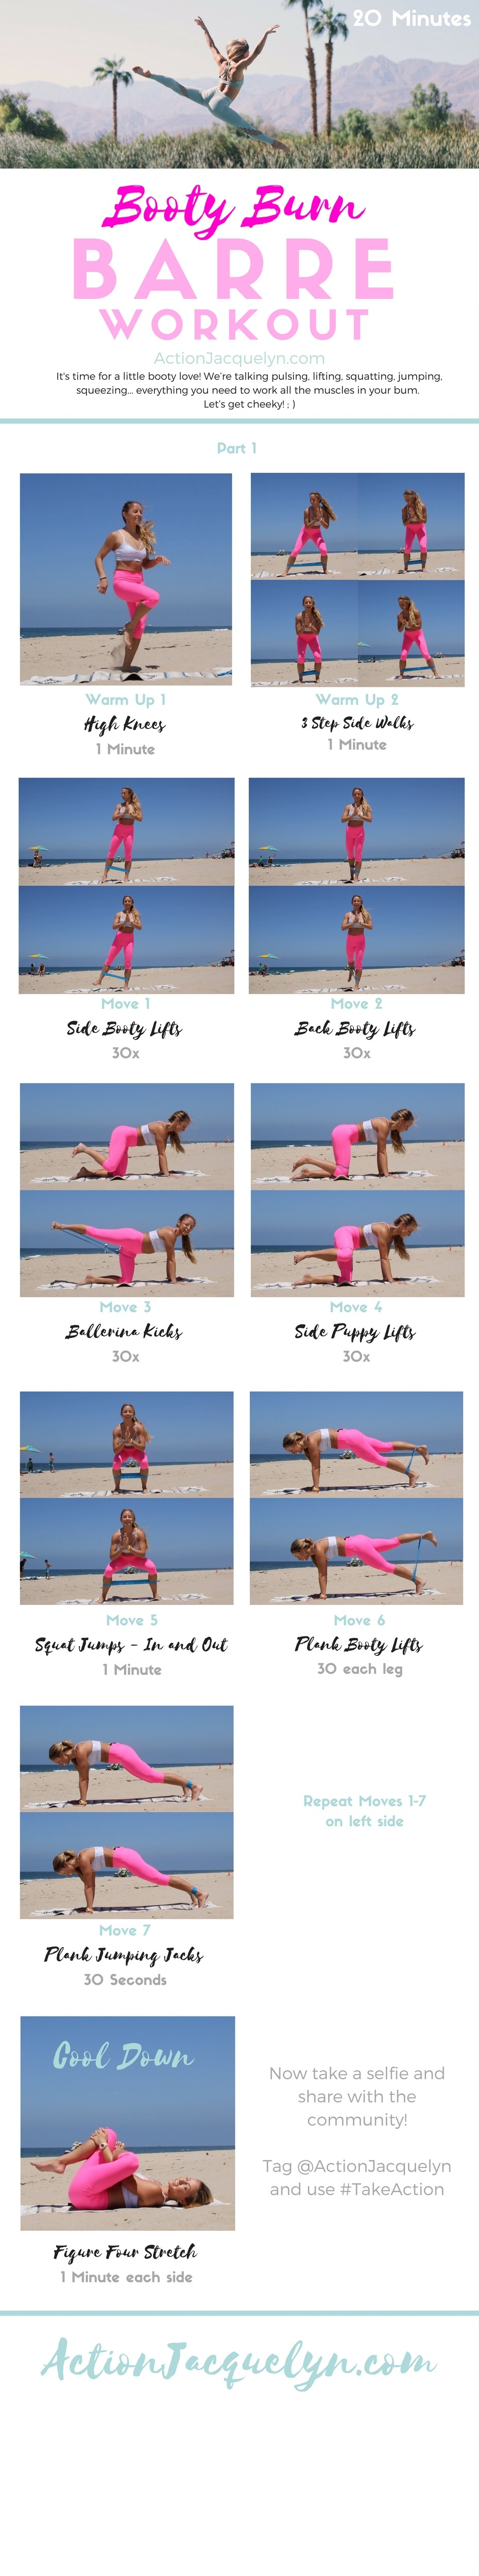 photograph regarding Printable Resistance Band Exercise Chart Pdf called Booty Burn off BARRE Physical fitness Work out with Resistance Band - Comprehensive